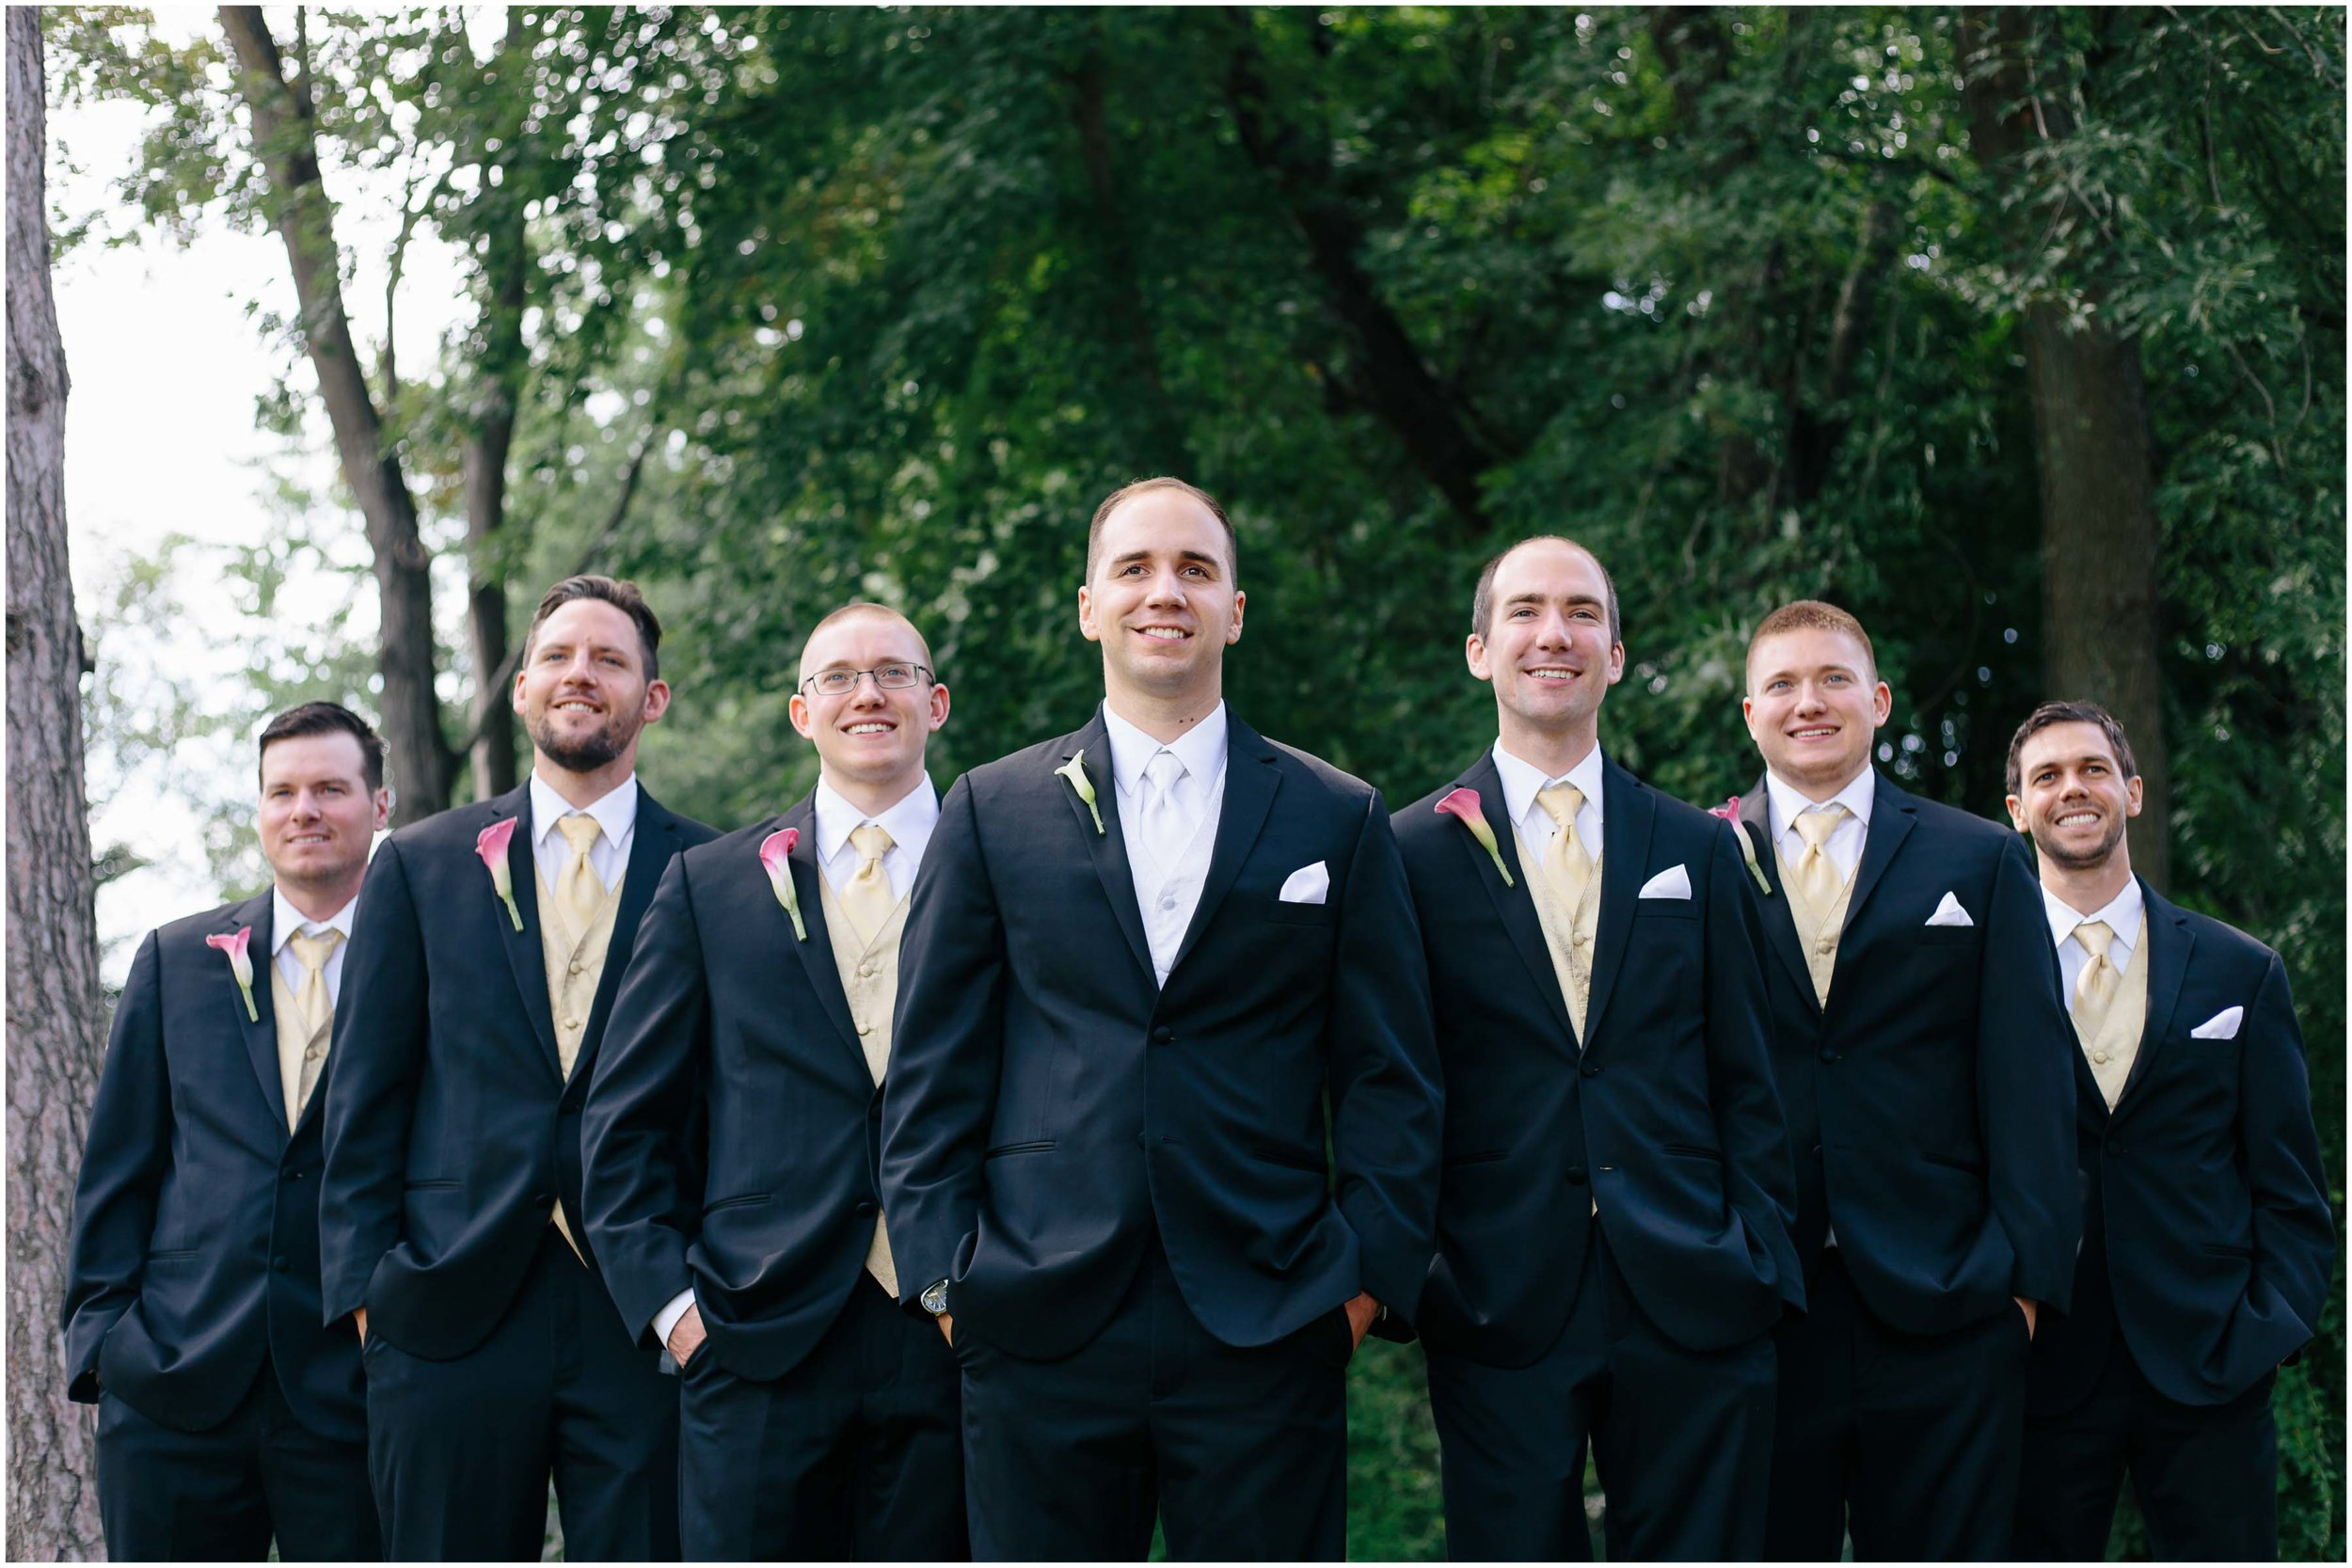 Chic New Hampshire Wedding at Manchester Country Club Bedford - groomsmen